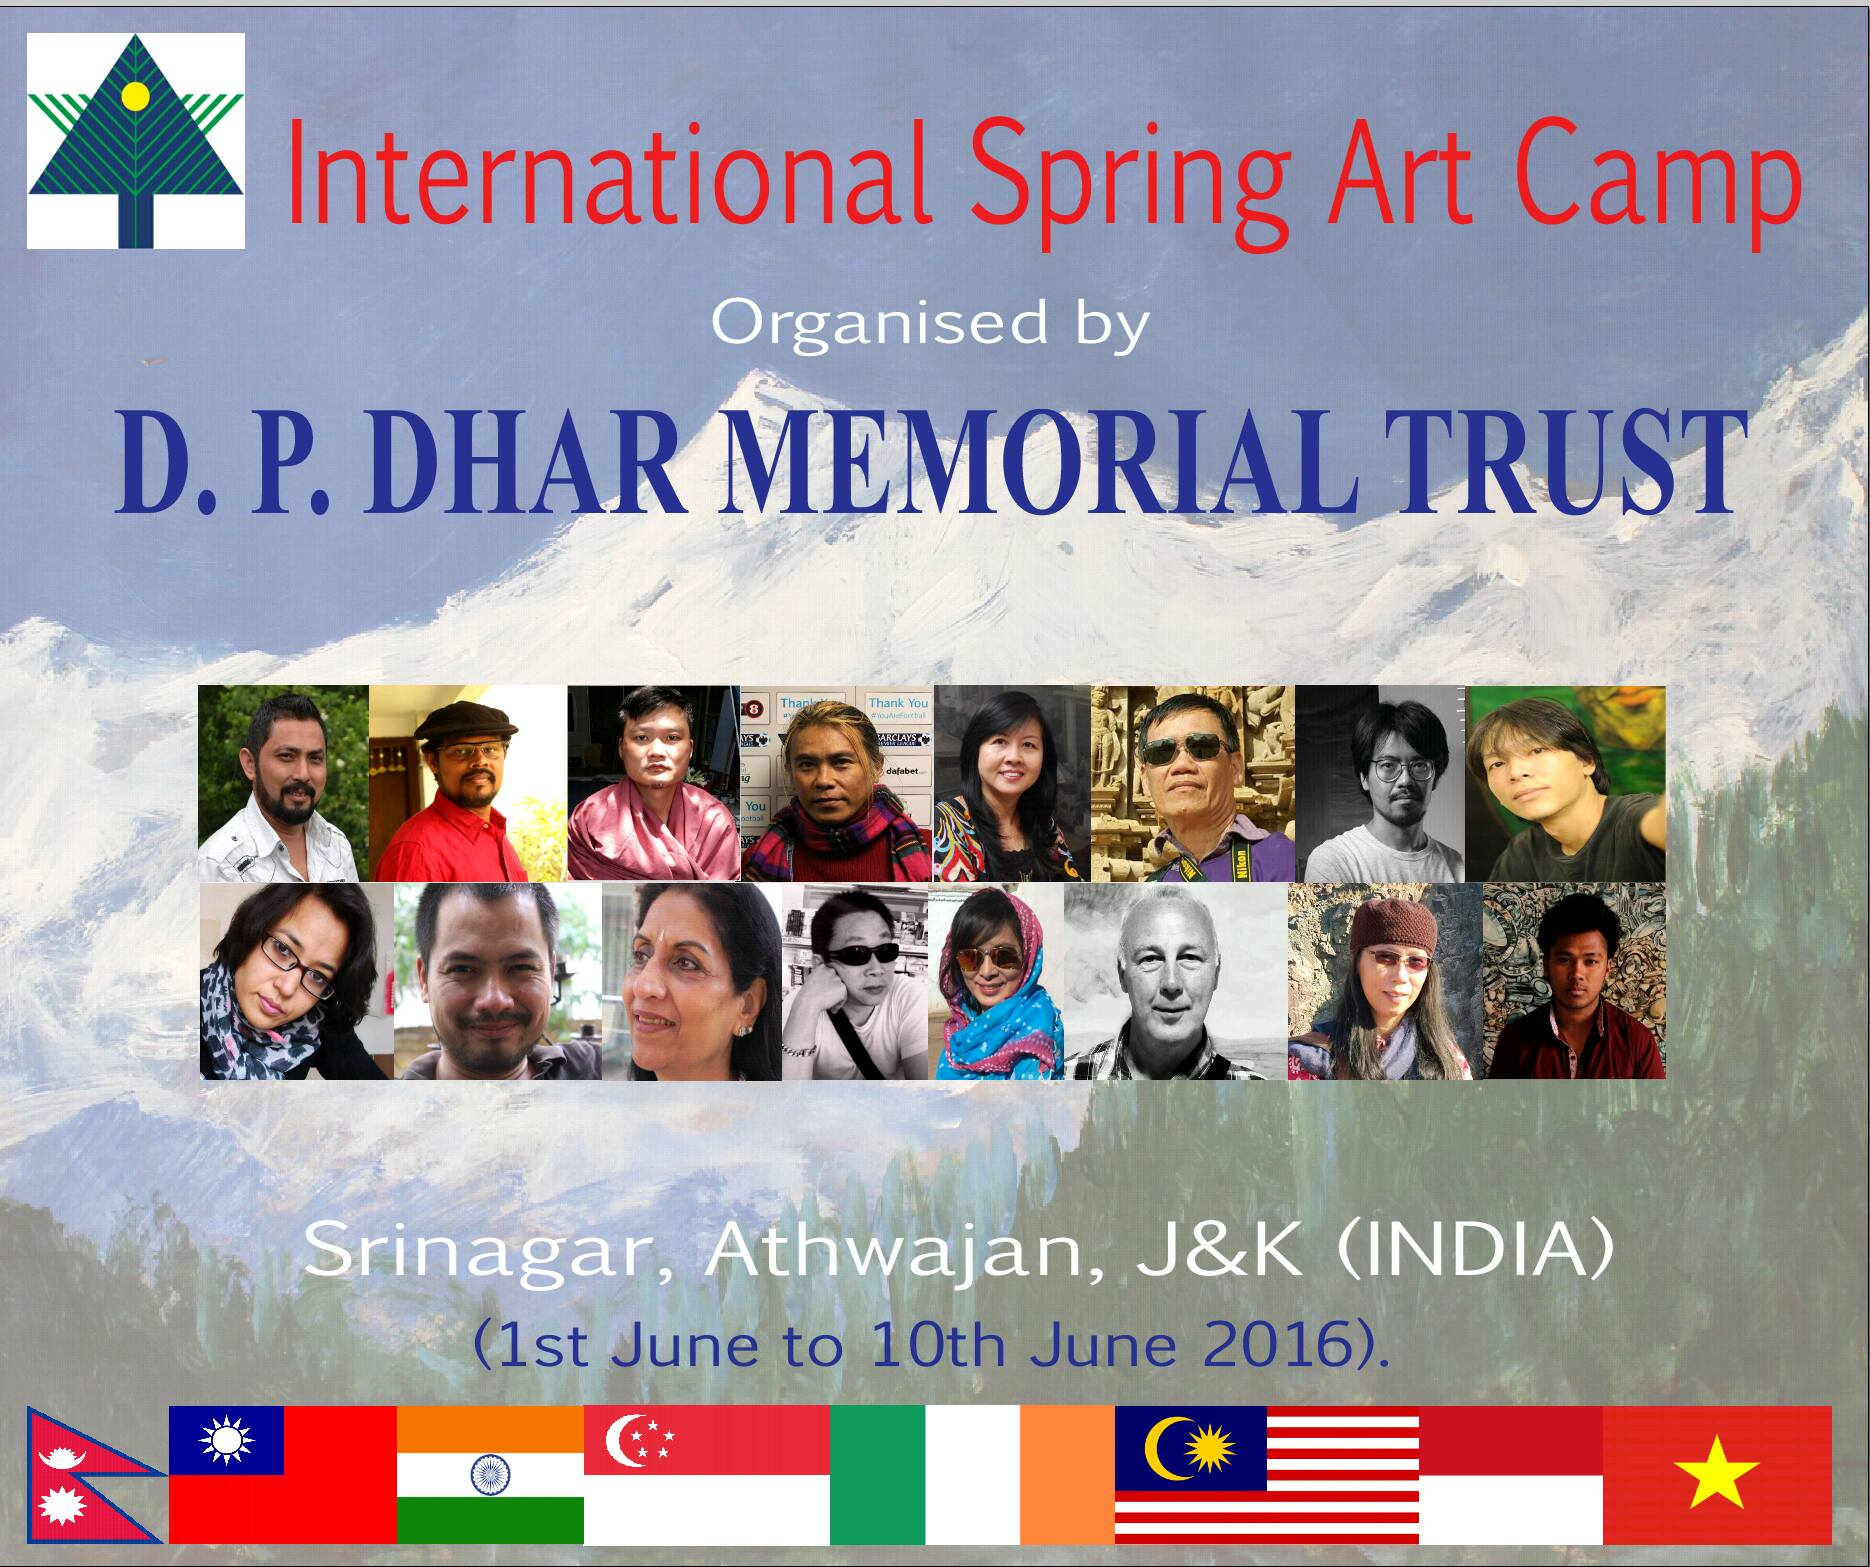 nternational Spring Art Camp at Srinagar, J&K, India .....from -1st June To 10th June 2016 — with Nguyen Hong Phuong, Tommy Barr, Phạm TânDậu and SzeHooi Gan.